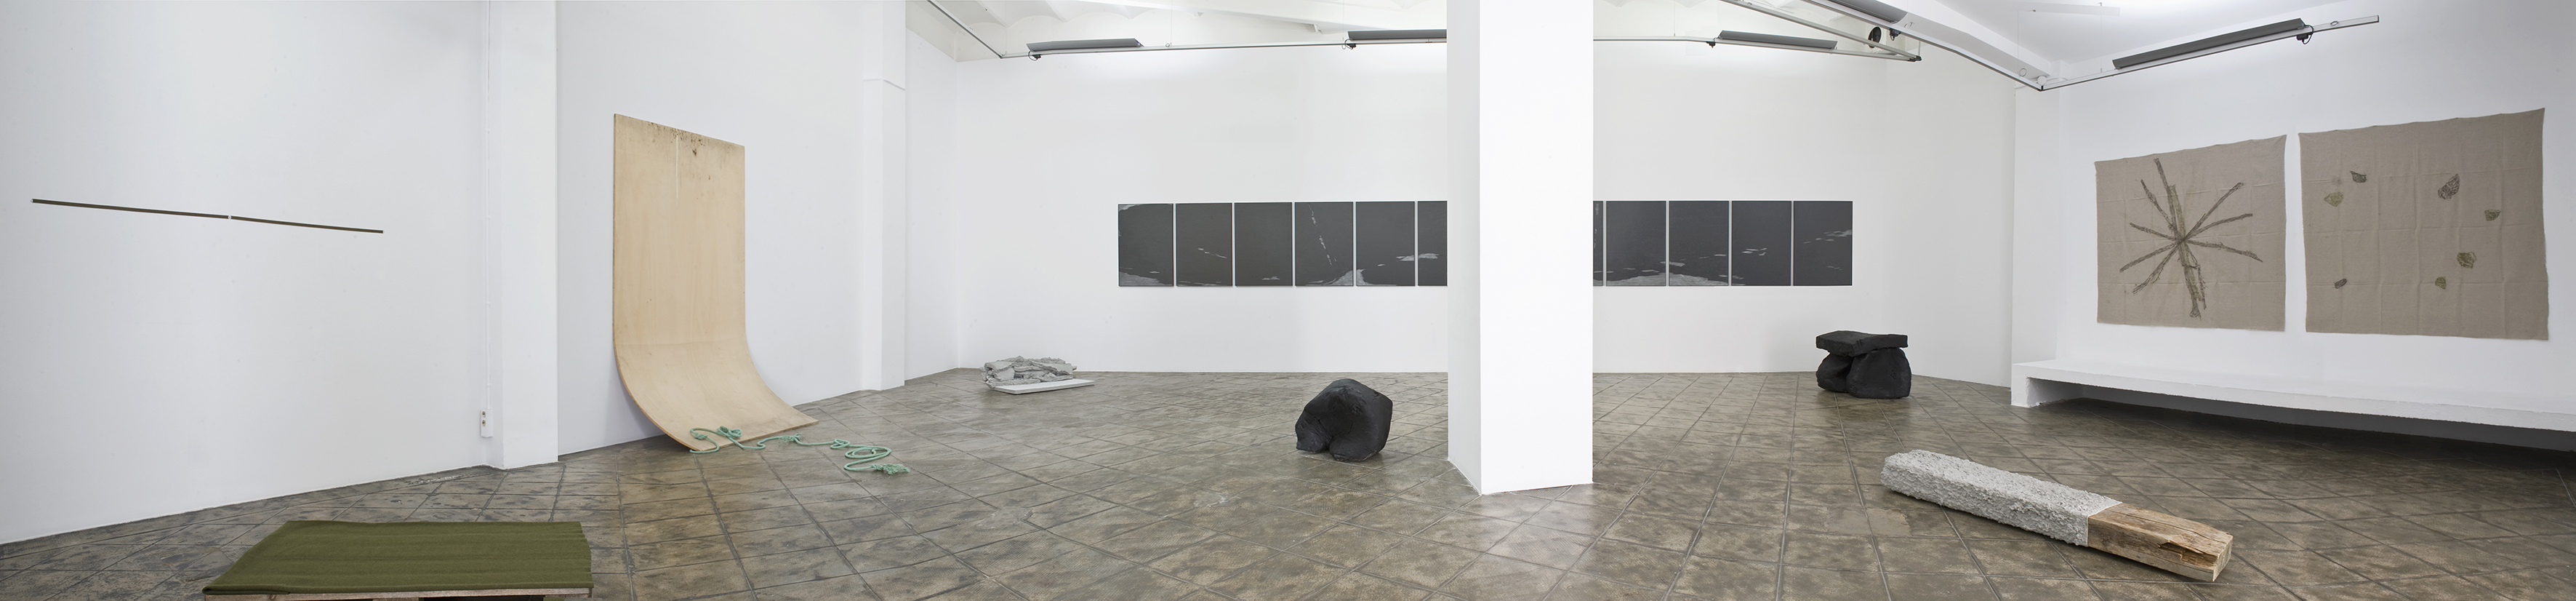 Installation view: Map, Record, Picture, Sculpture, ProjecteSD, Barcelona, 2013.   Map, Record, Picture, Sculpture   ProjecteSD